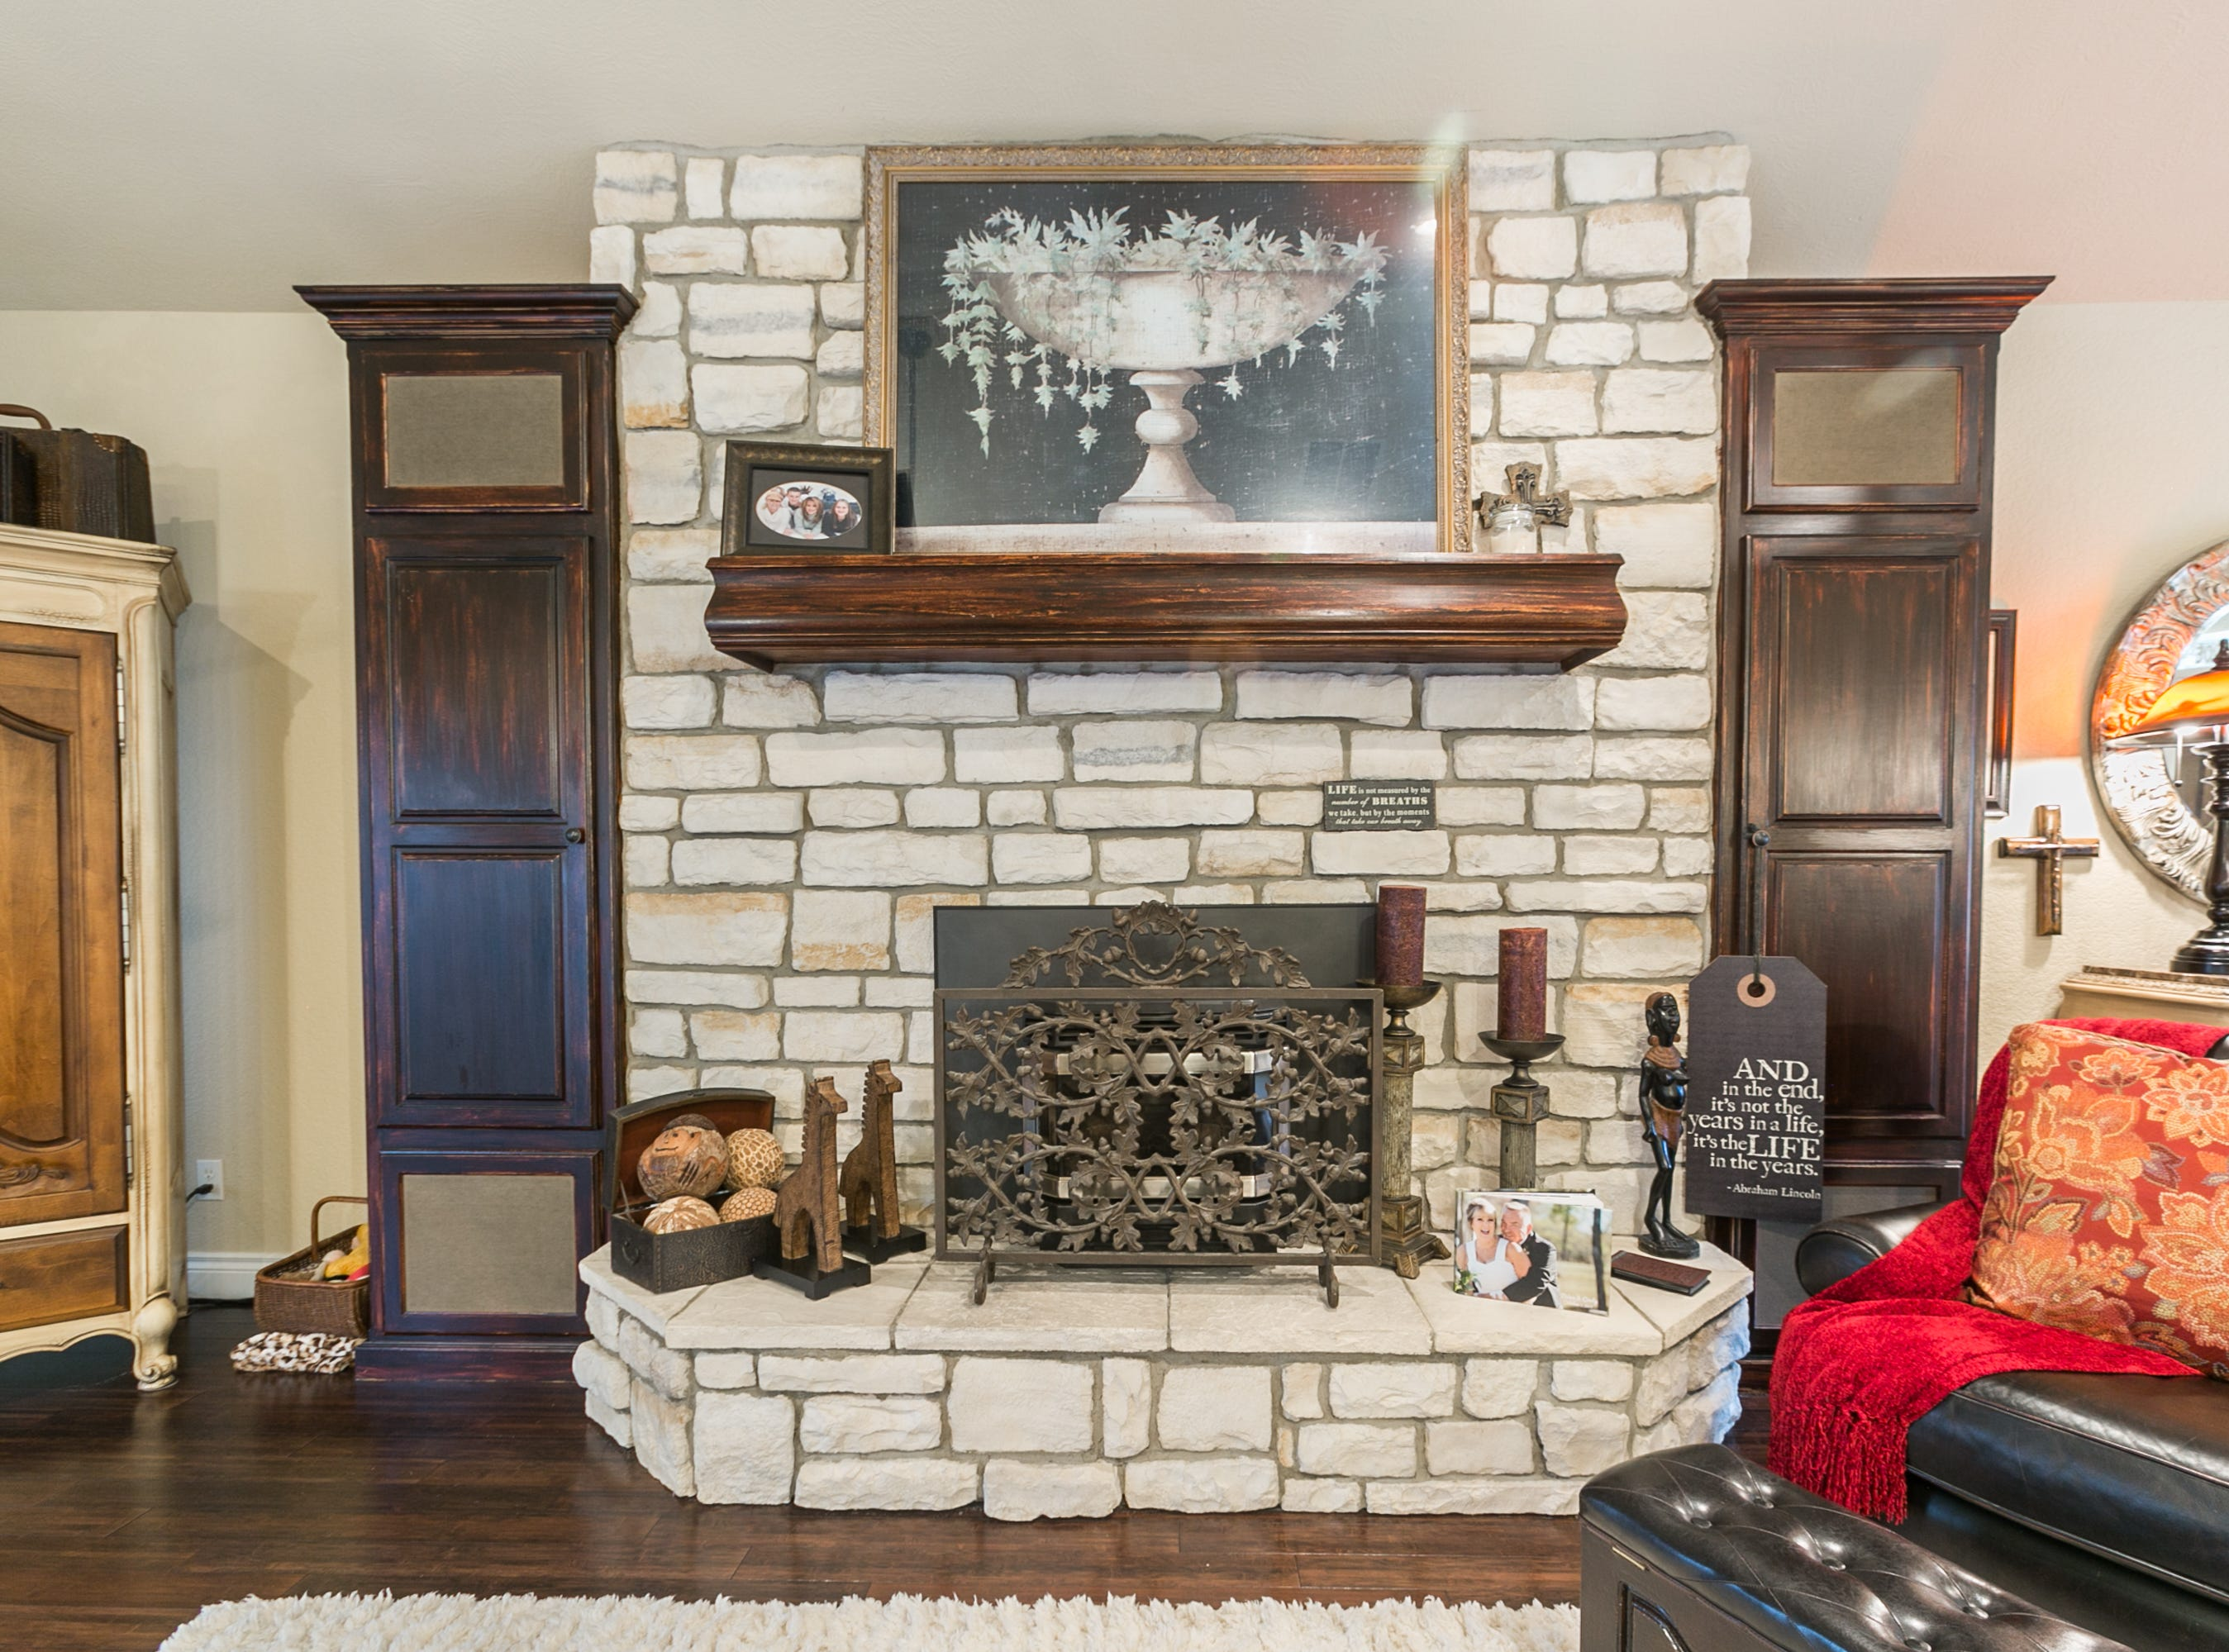 A lovely stone fireplace anchors the living area. Cindy had the wood built-ins and mantel repainted to give them an older, natural feel.